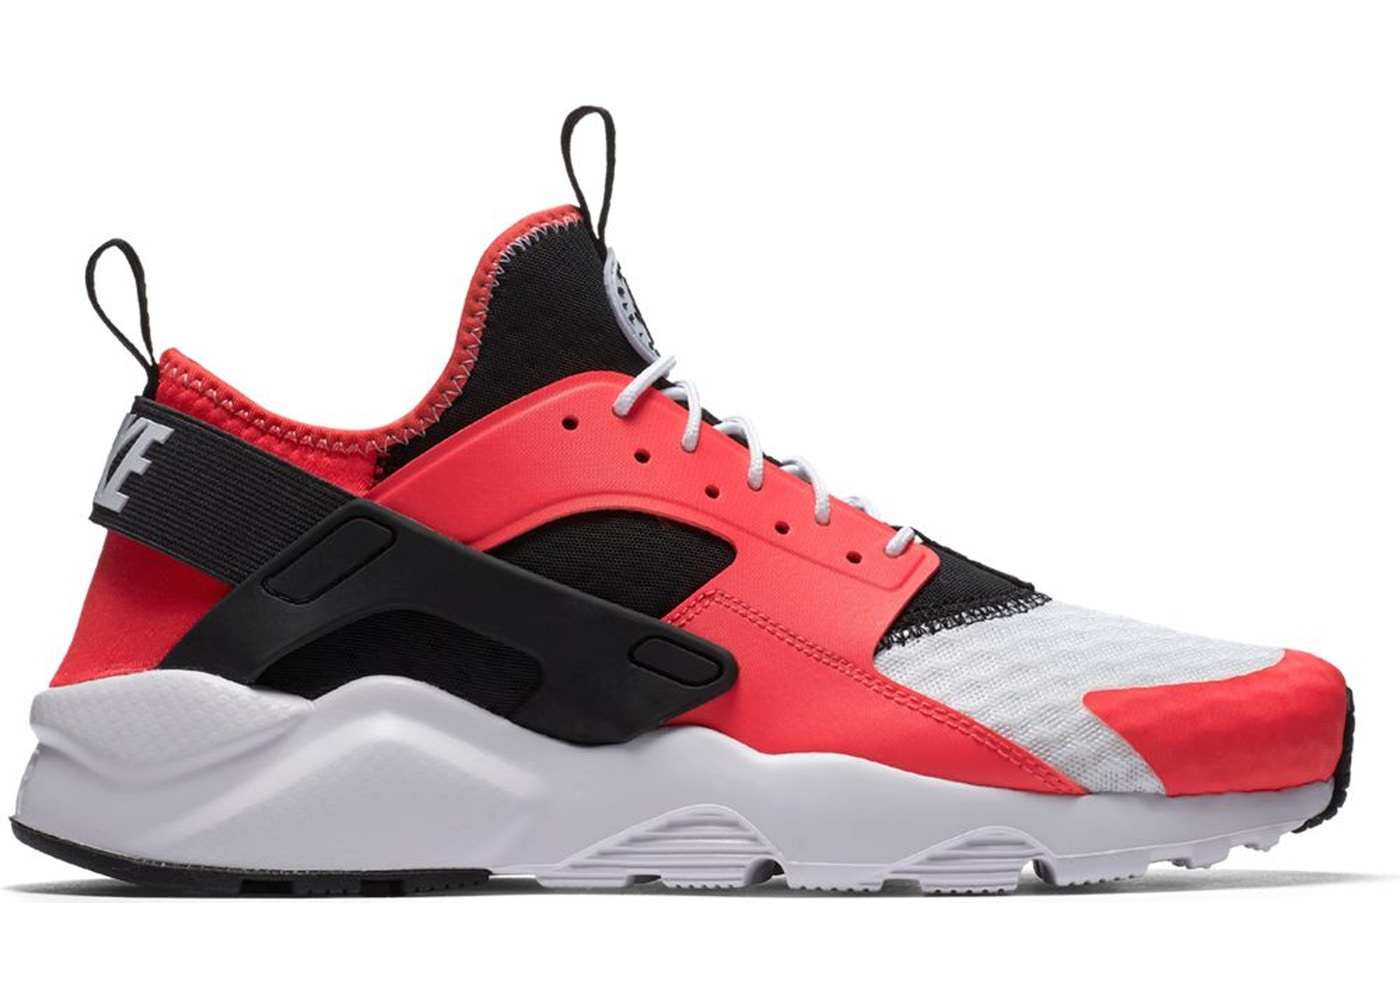 6526ef96cc31 Air Huarache Run Ultra Siren Red - 819685-603